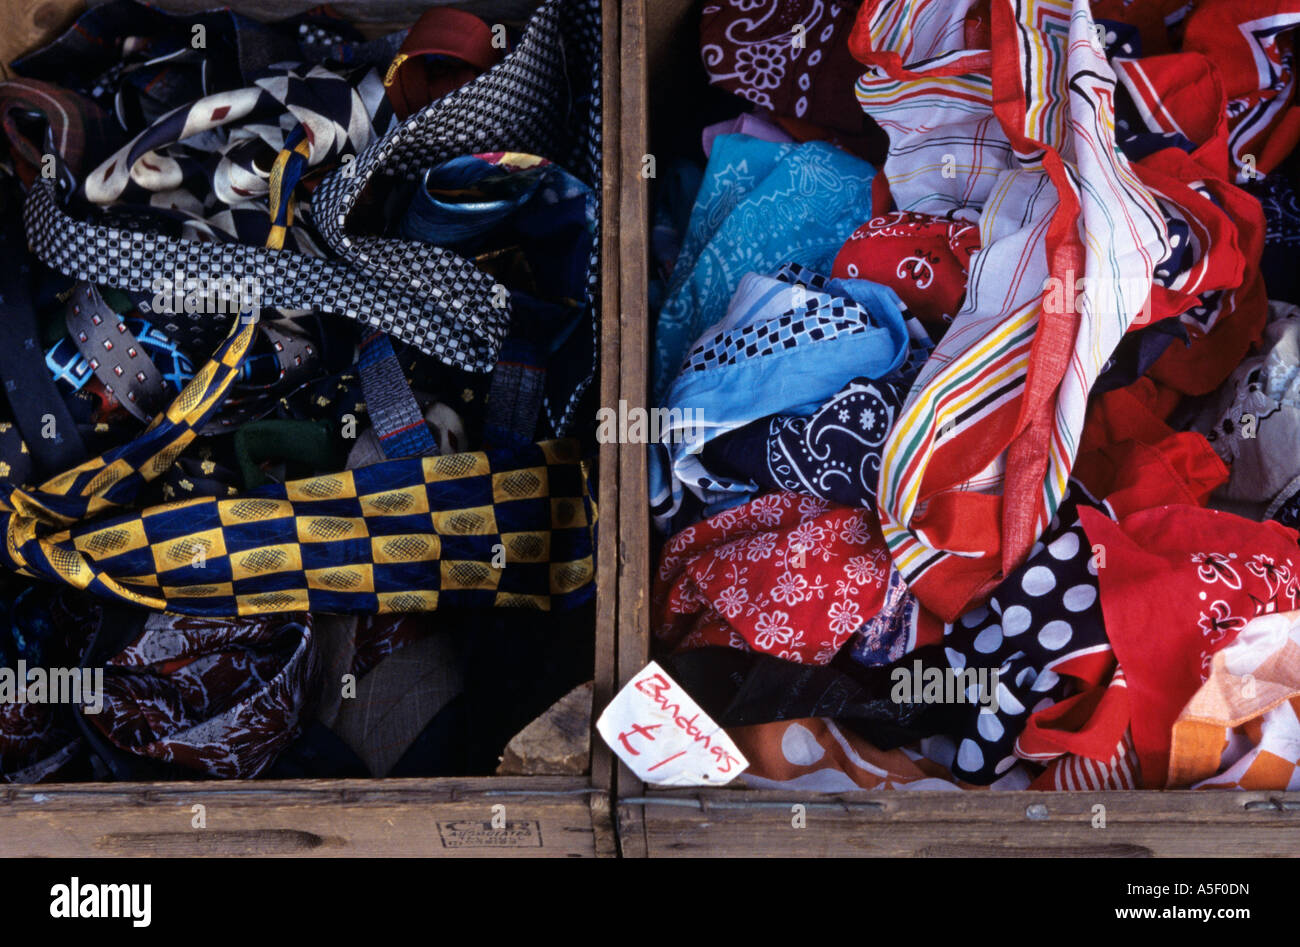 Ties and bandanas at a jumble sale in London - Stock Image